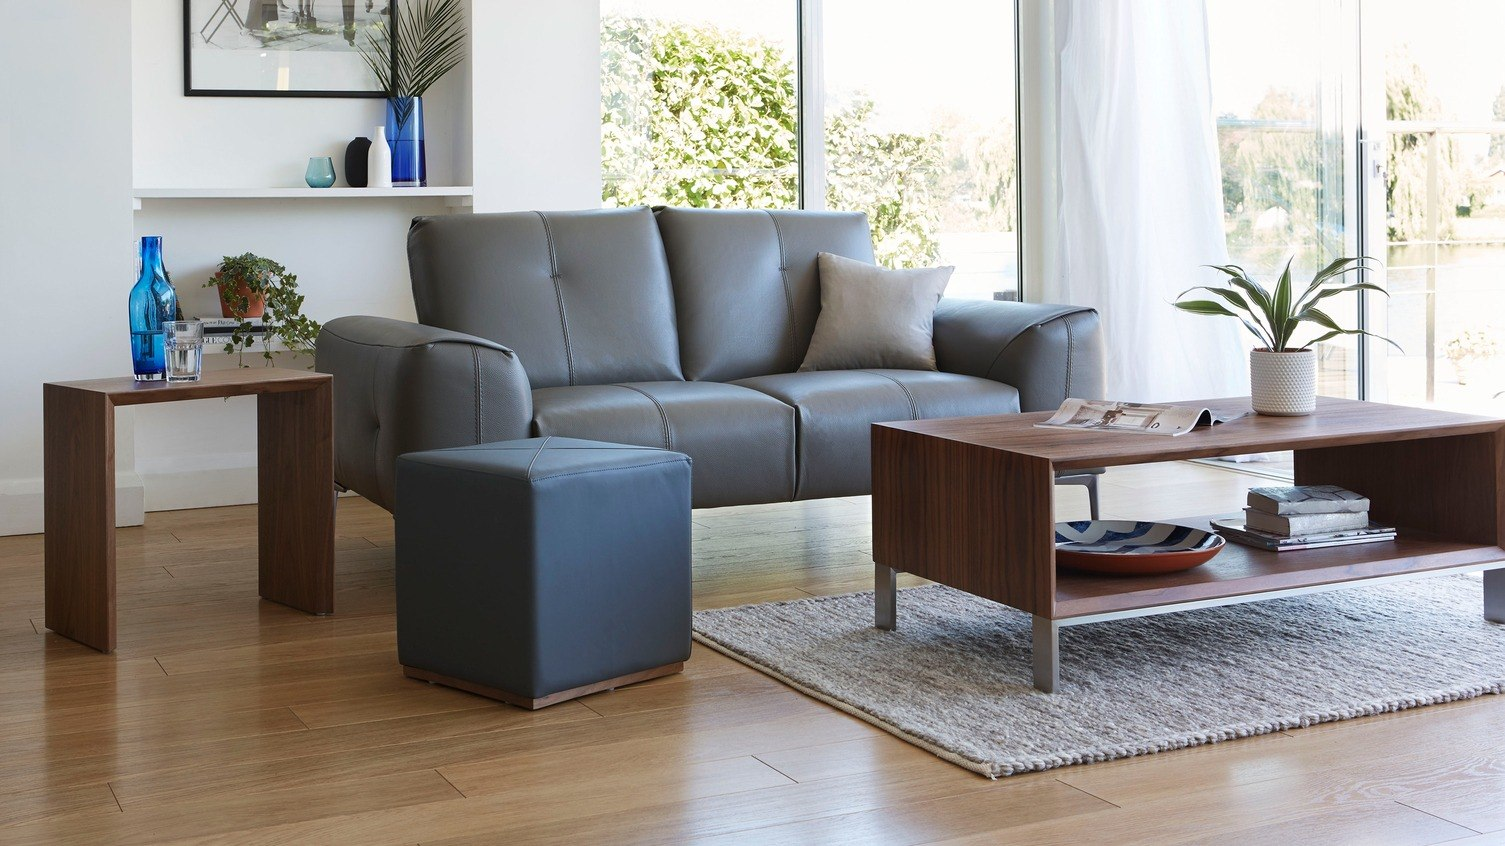 Create a welcoming living room setting by using real leathers and warm walnut finishes.